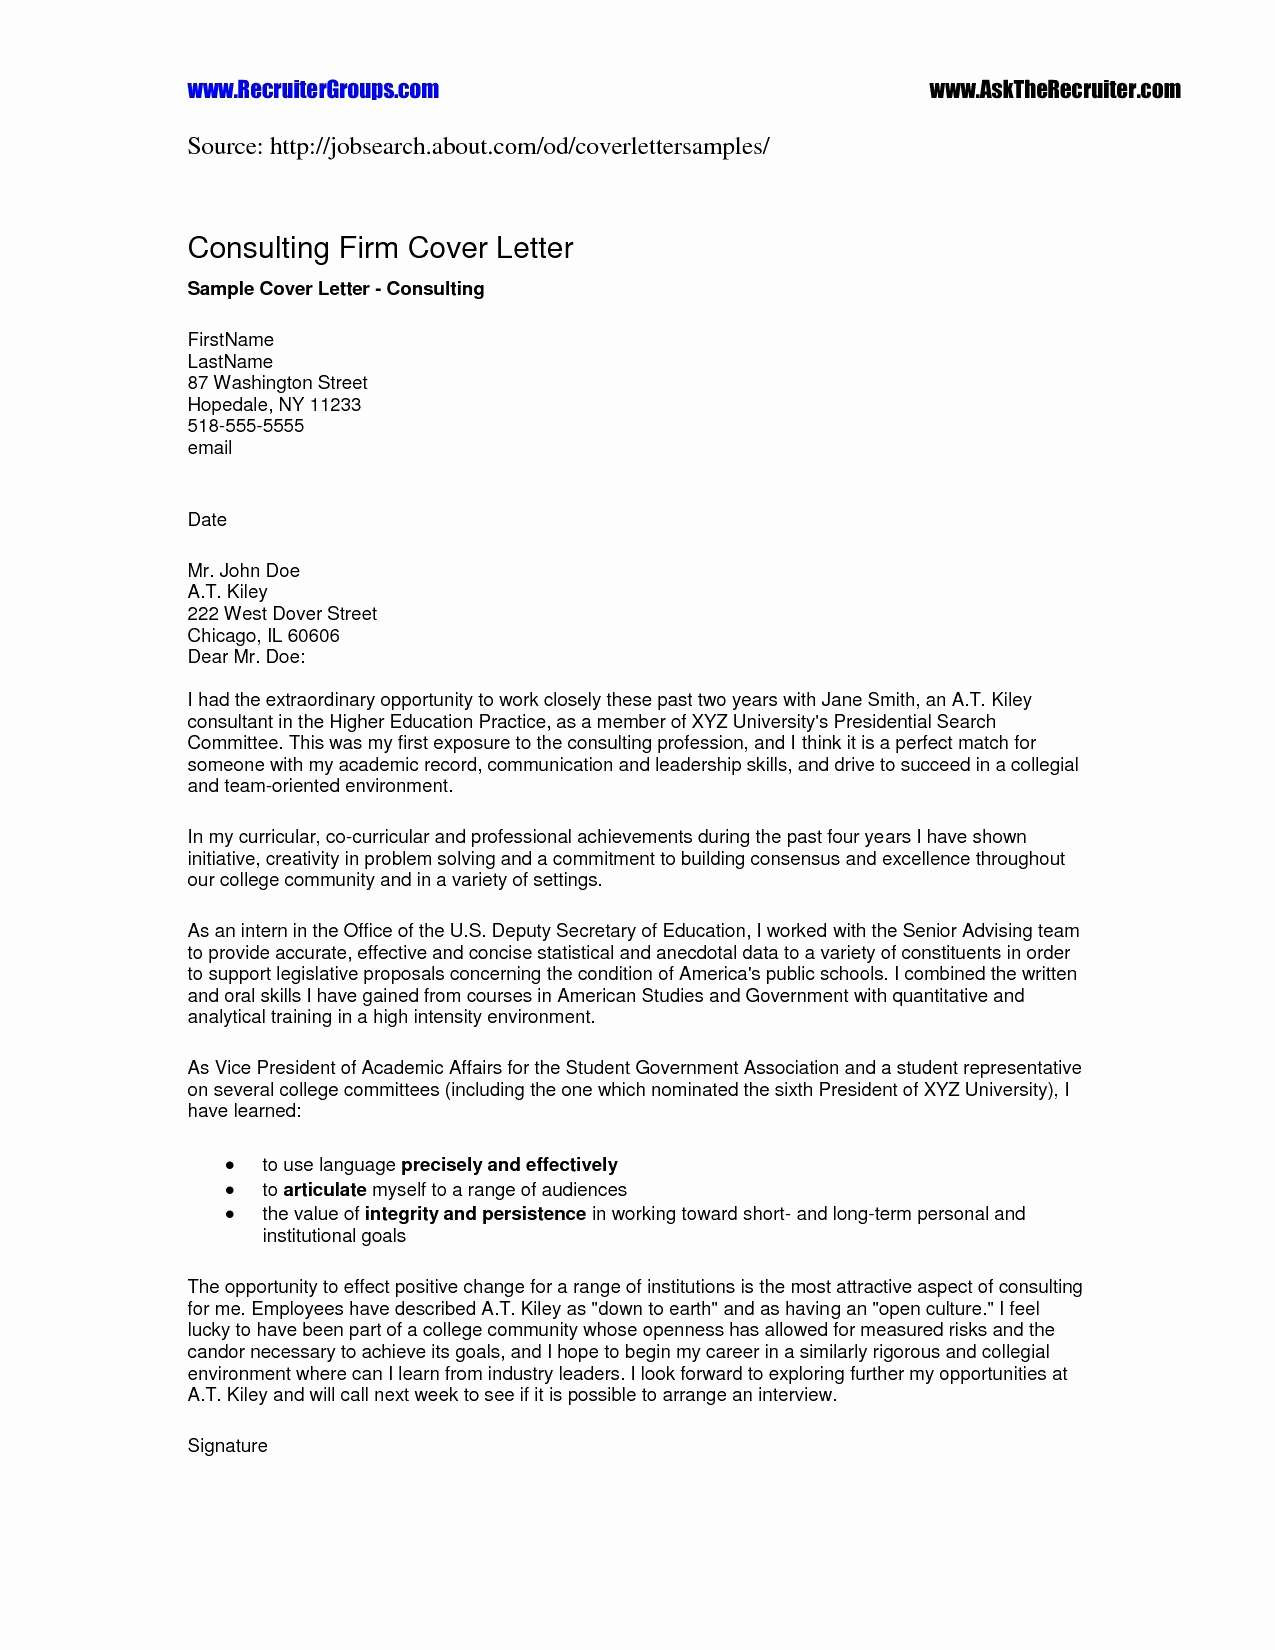 Customer Service Cover Letter Template Word - Teacher Resume Templates Microsoft Word 2007 Fresh Modern Resume